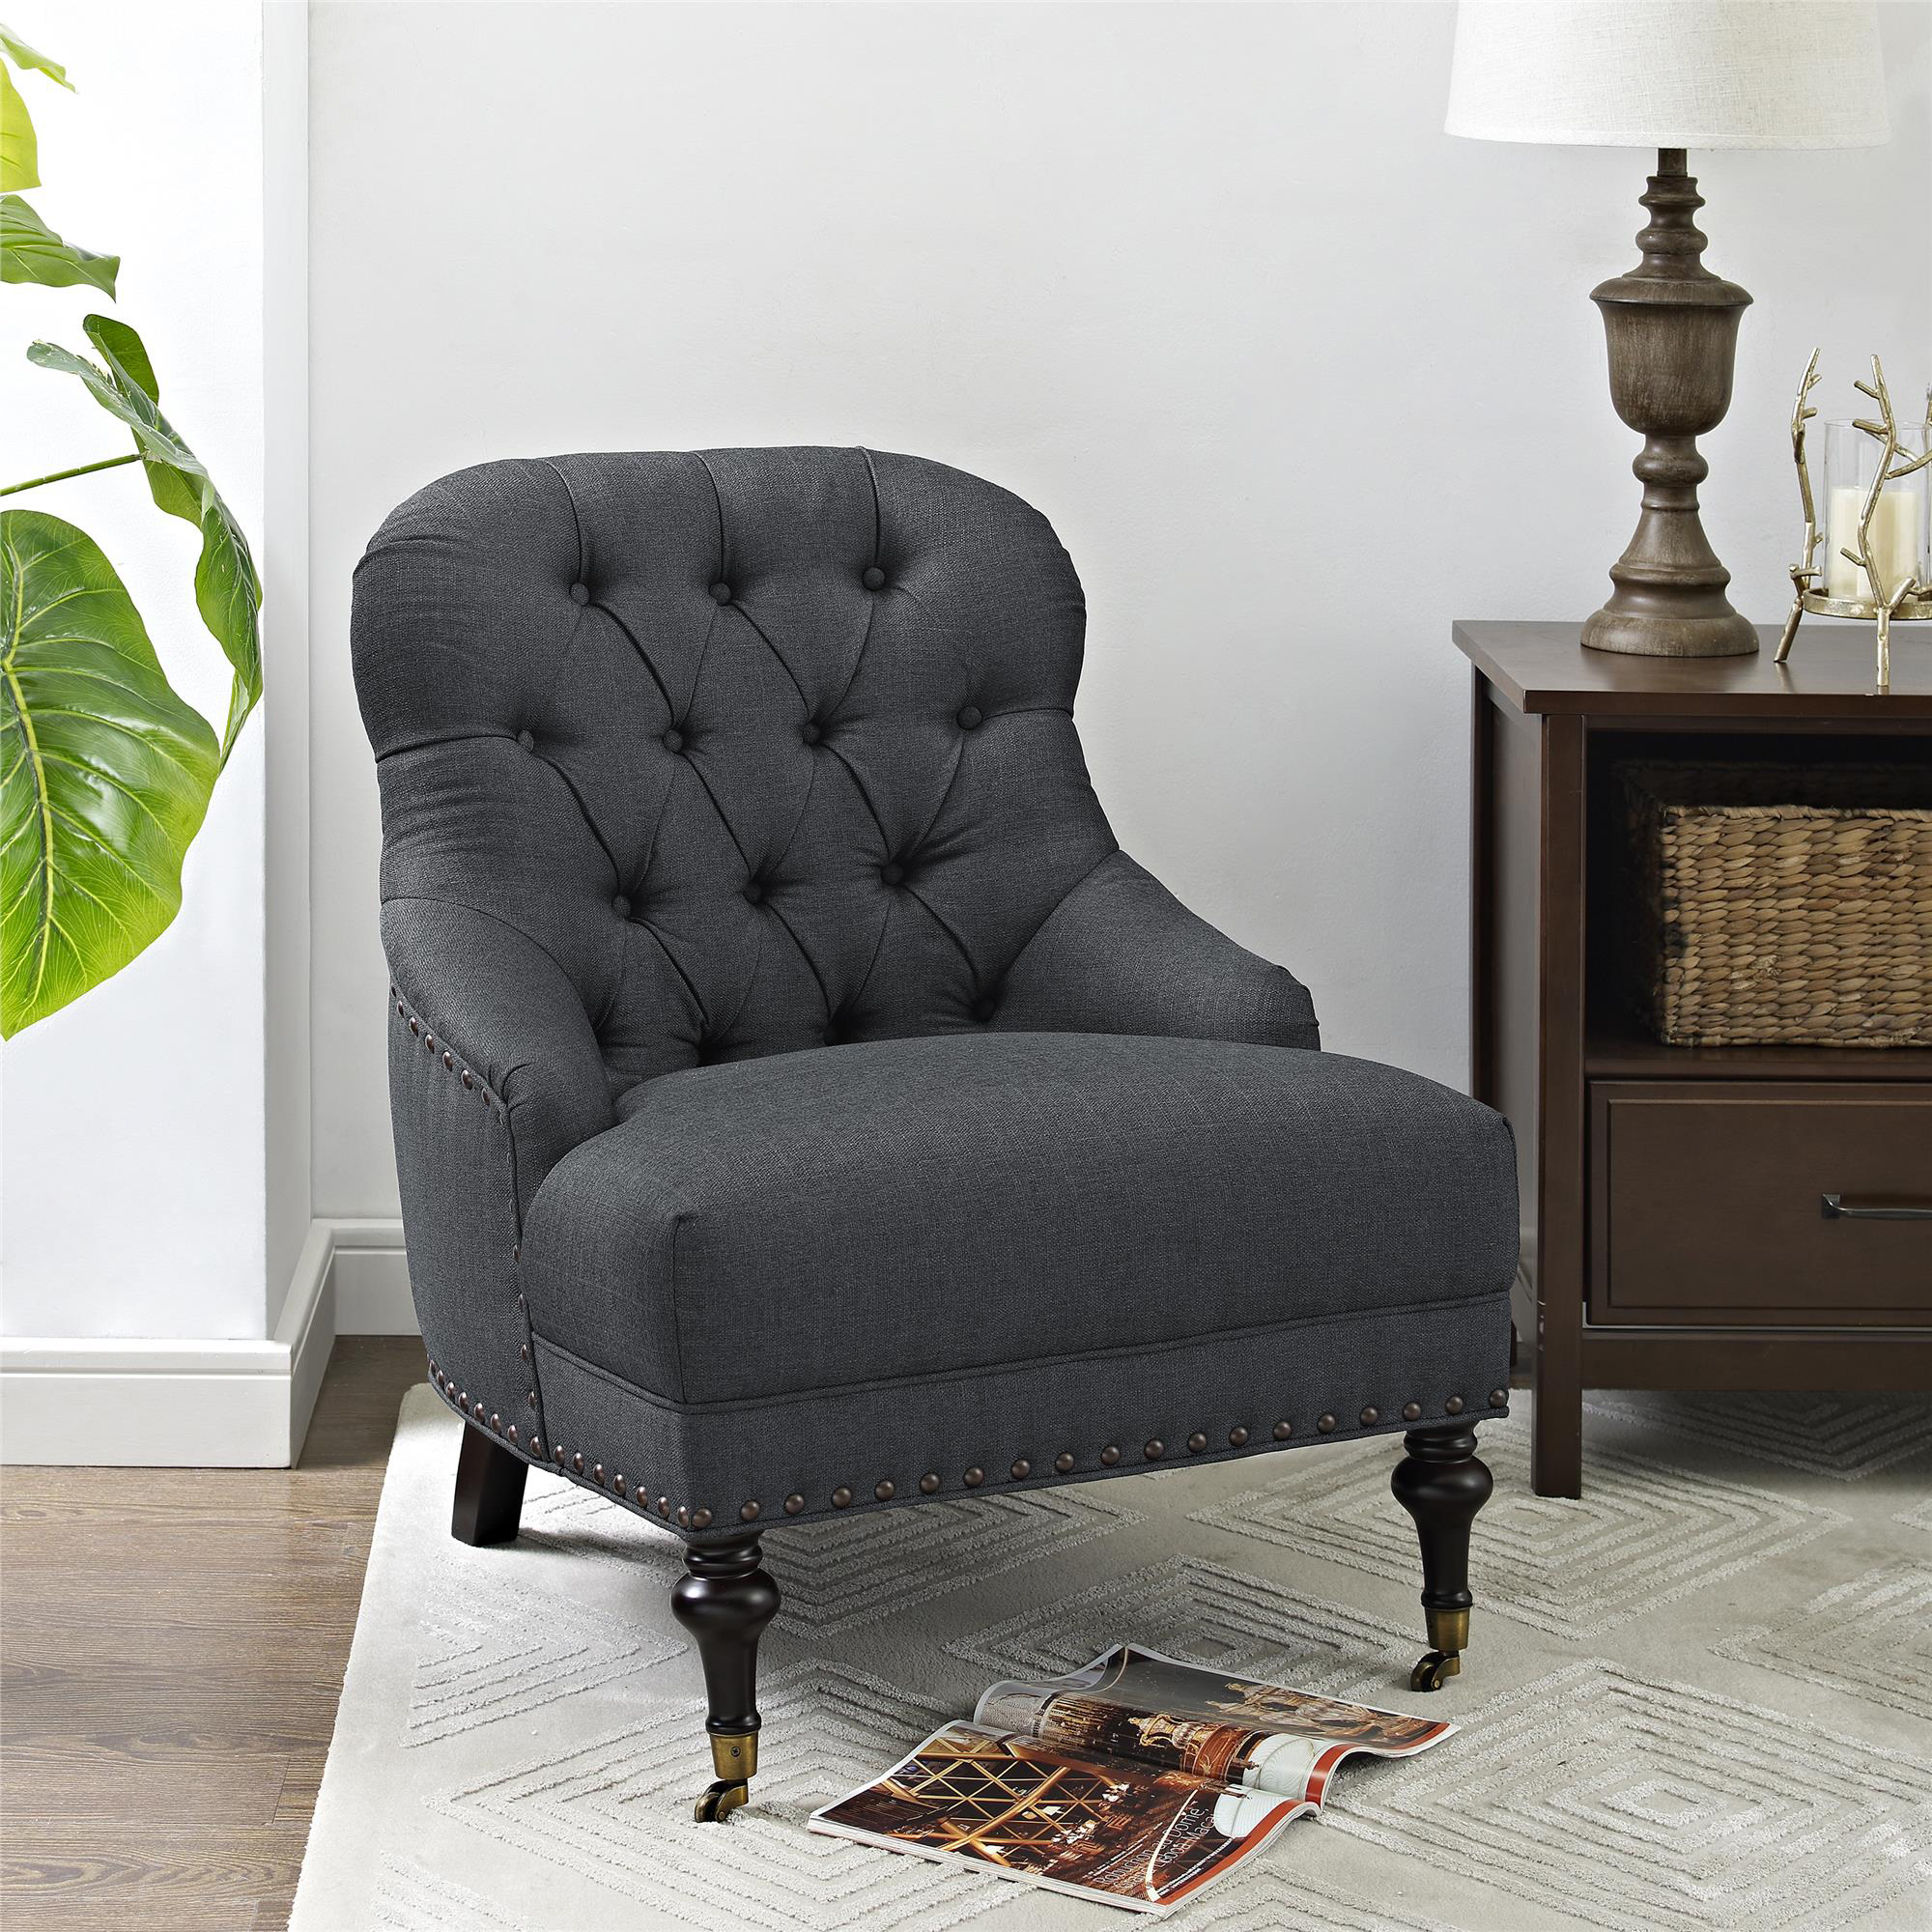 Accent Chair With Lots Of Color: Better Homes & Gardens Tufted Accent Chair, Multiple